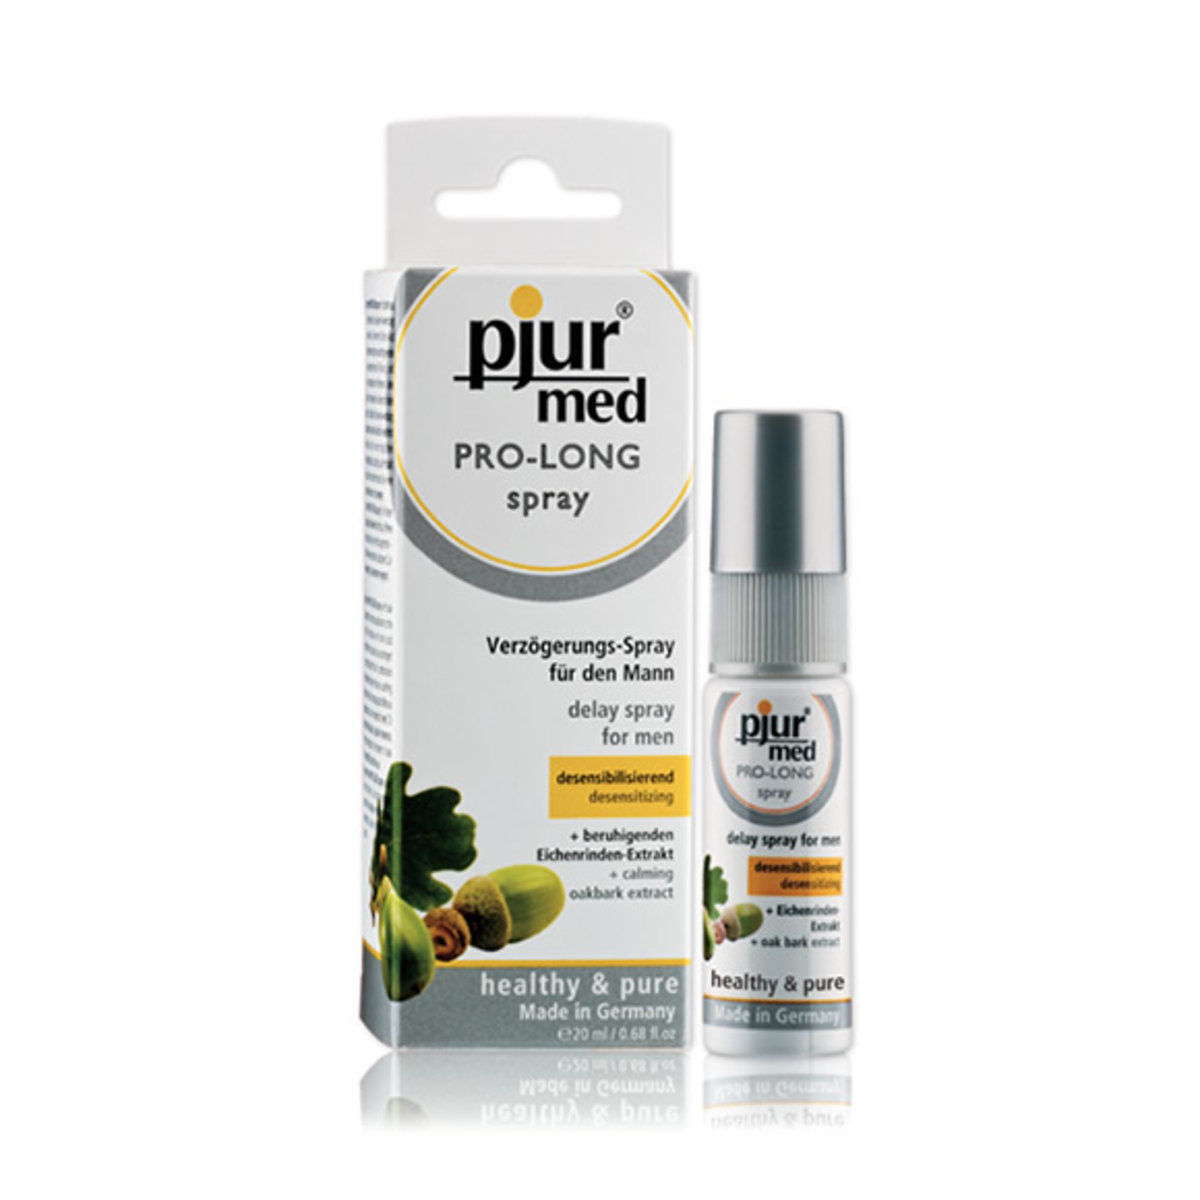 med Natural Pro-Long Performance Spray Medical Grade Pro-Long Spray - 20ml